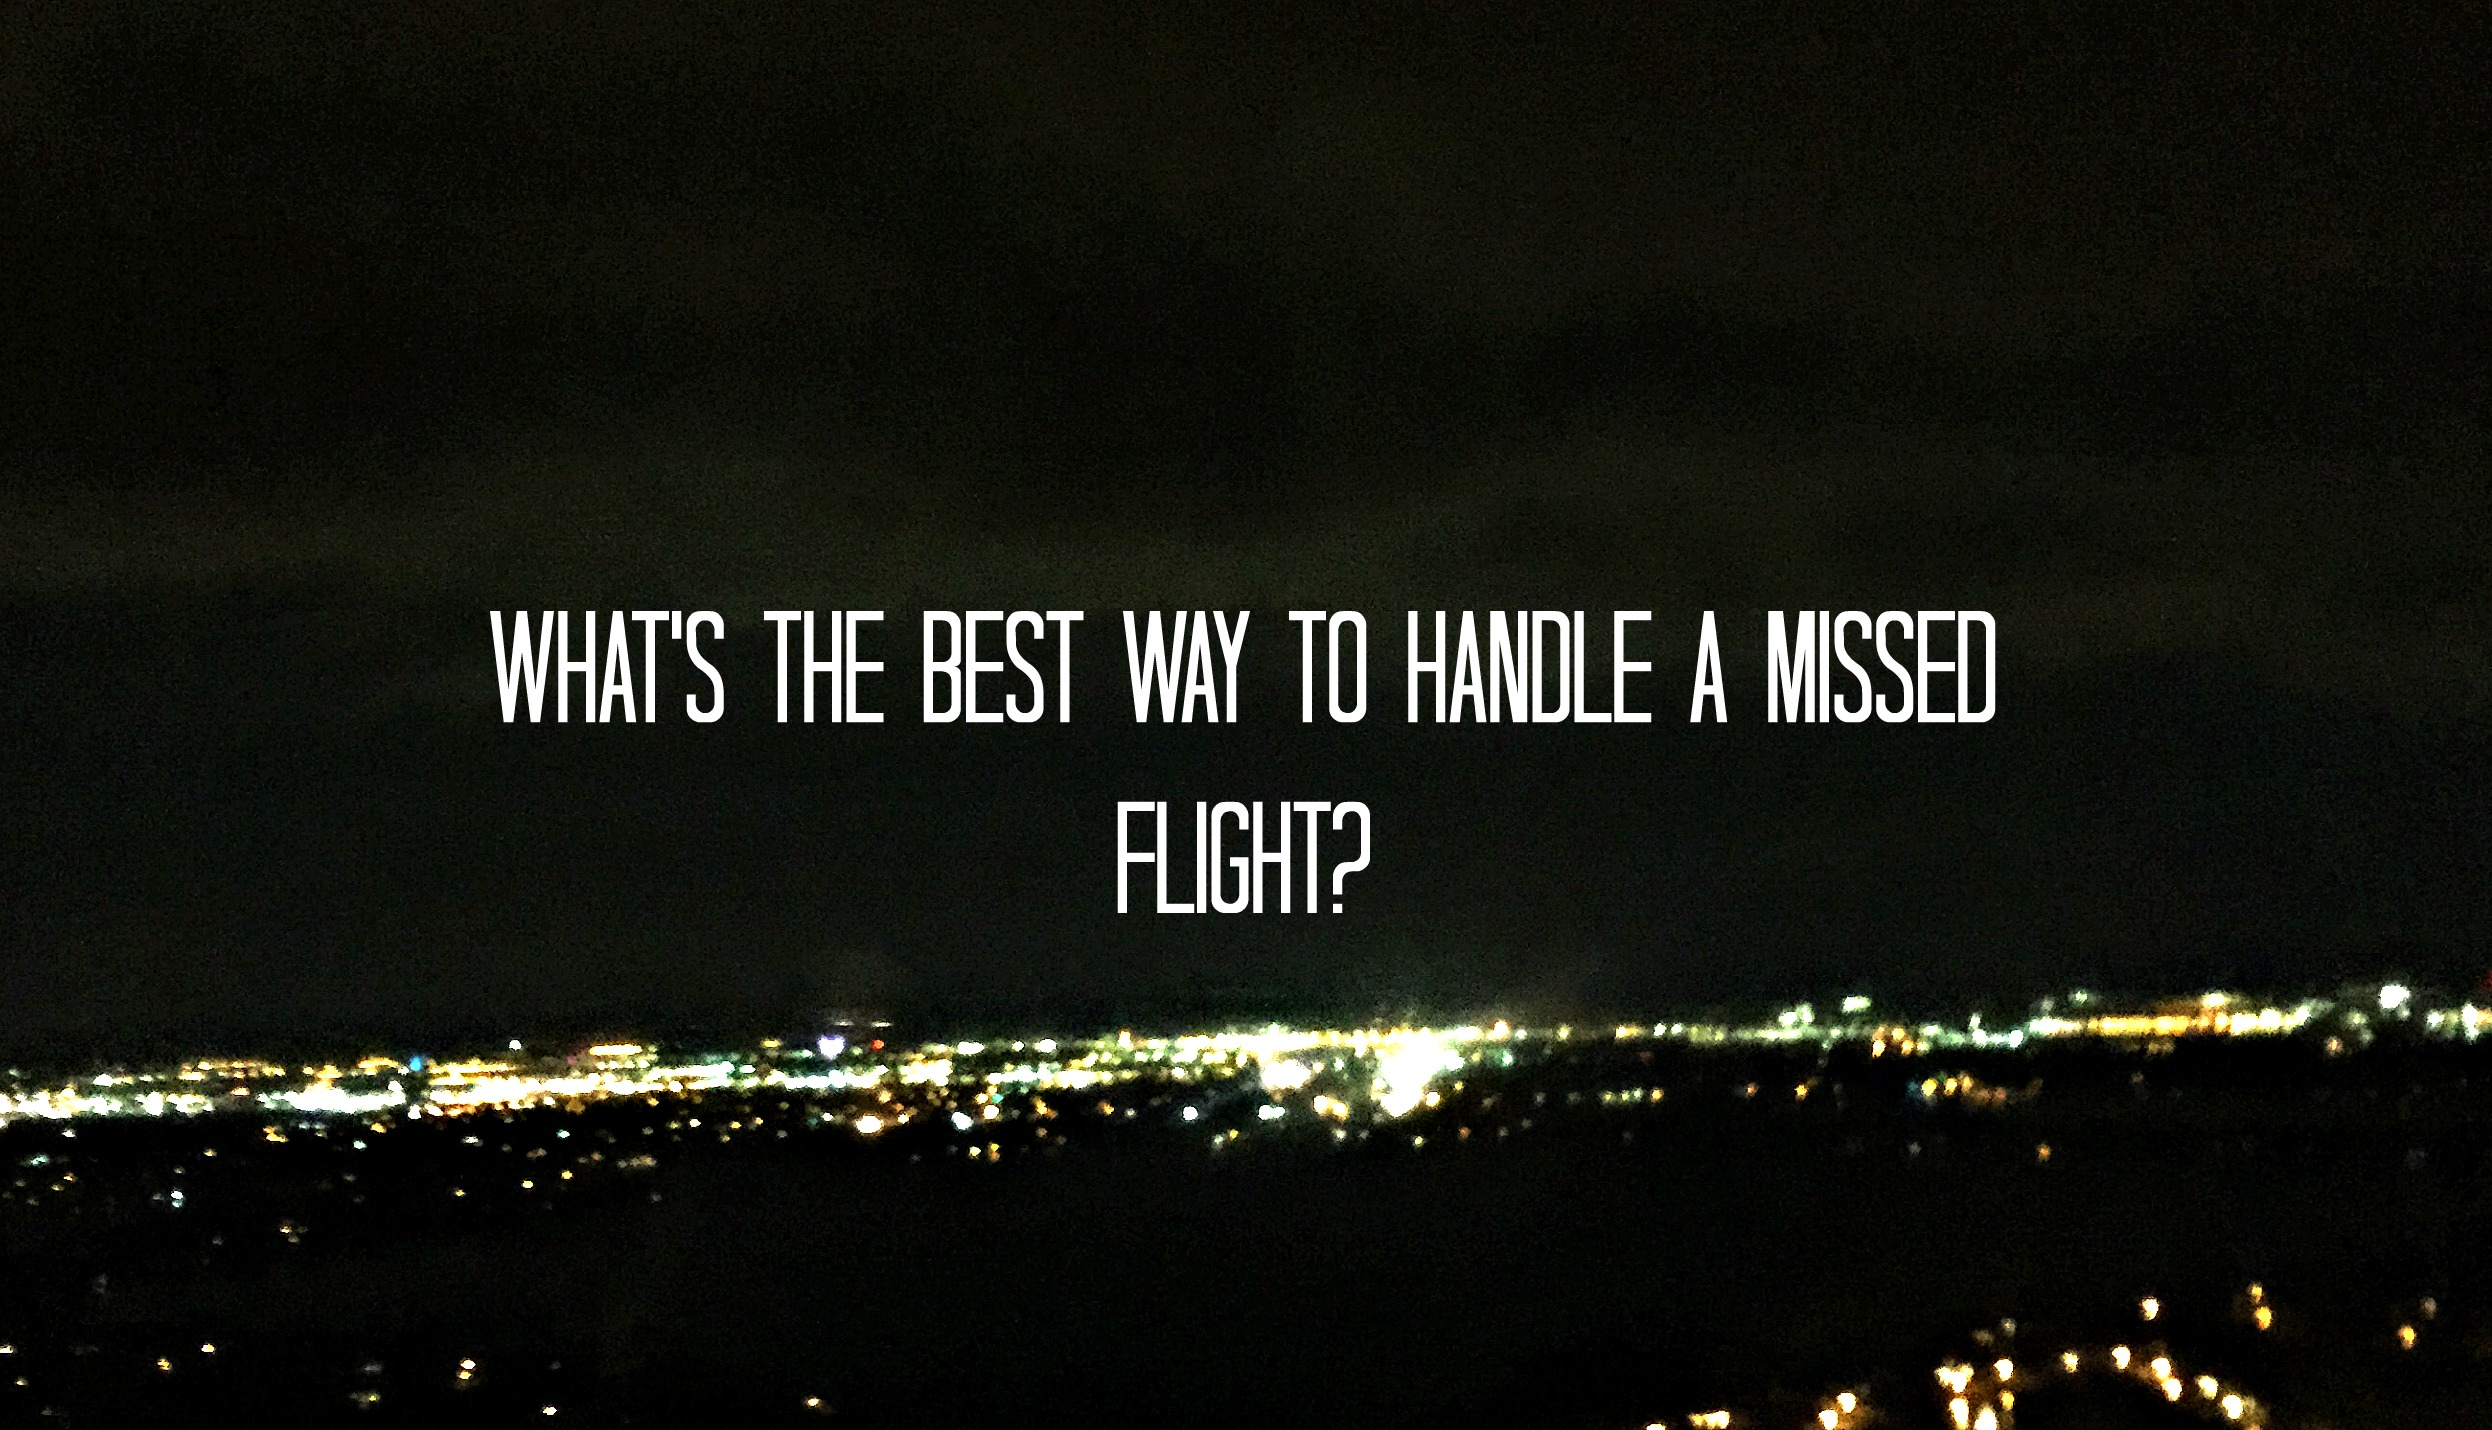 What's the Best Way to Handle a Missed Flight?